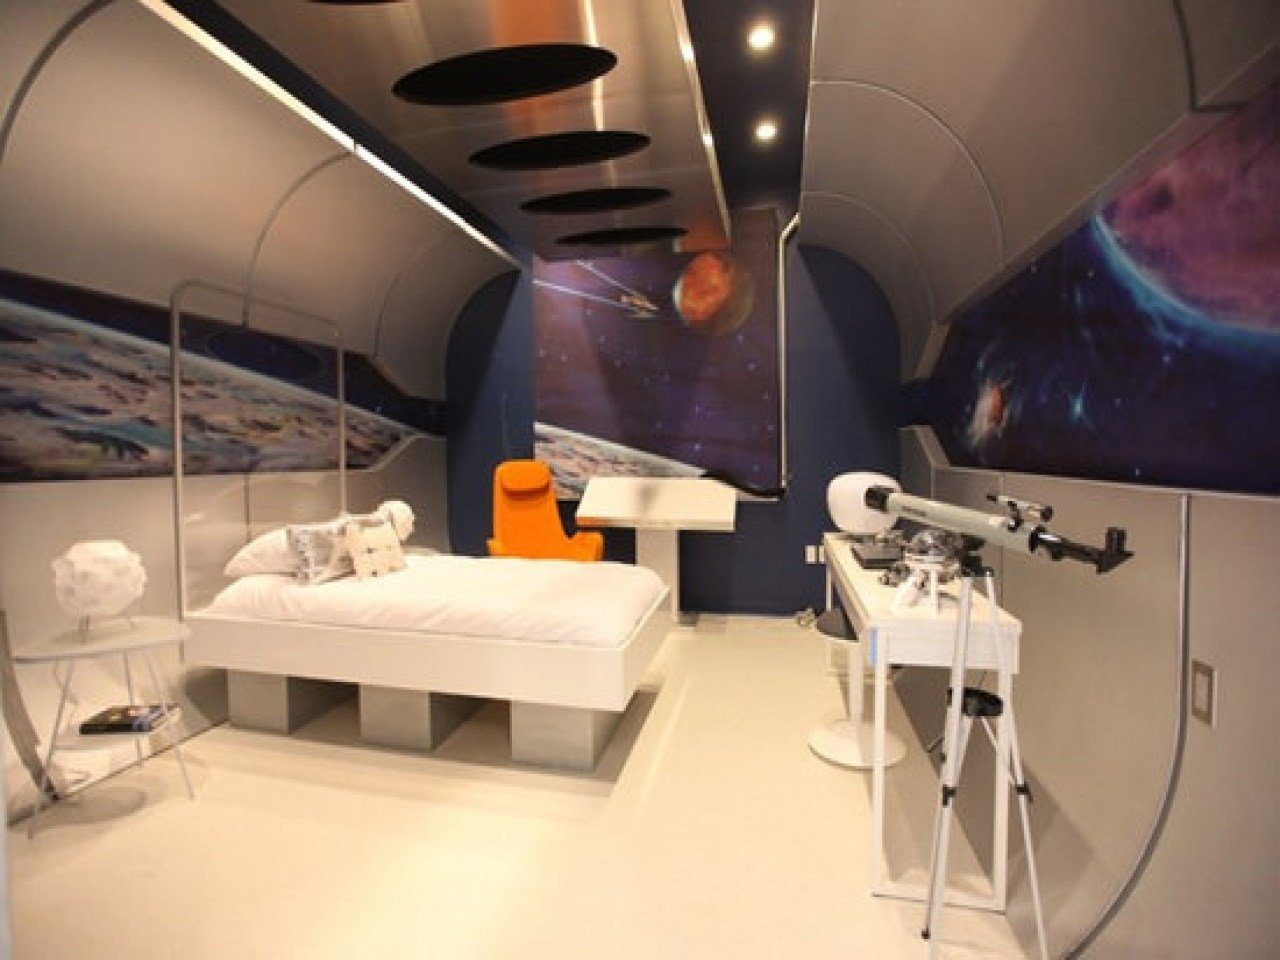 Best Space Bedroom Decor Star Wars Themed Bedroom Assassin S With Pictures